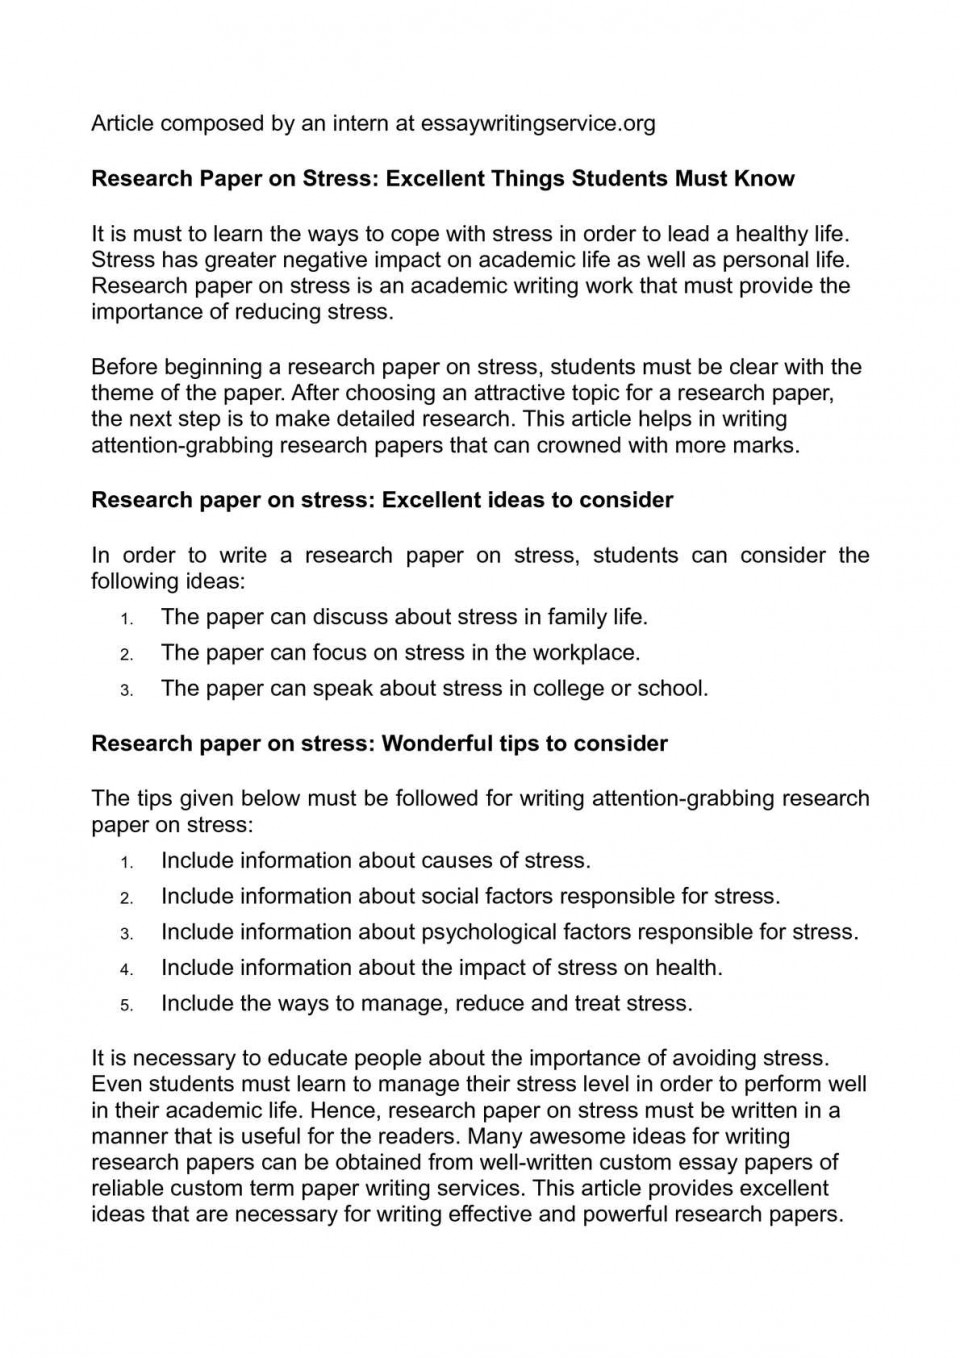 001 Research Paper Psychology Topics Stress Beautiful 960